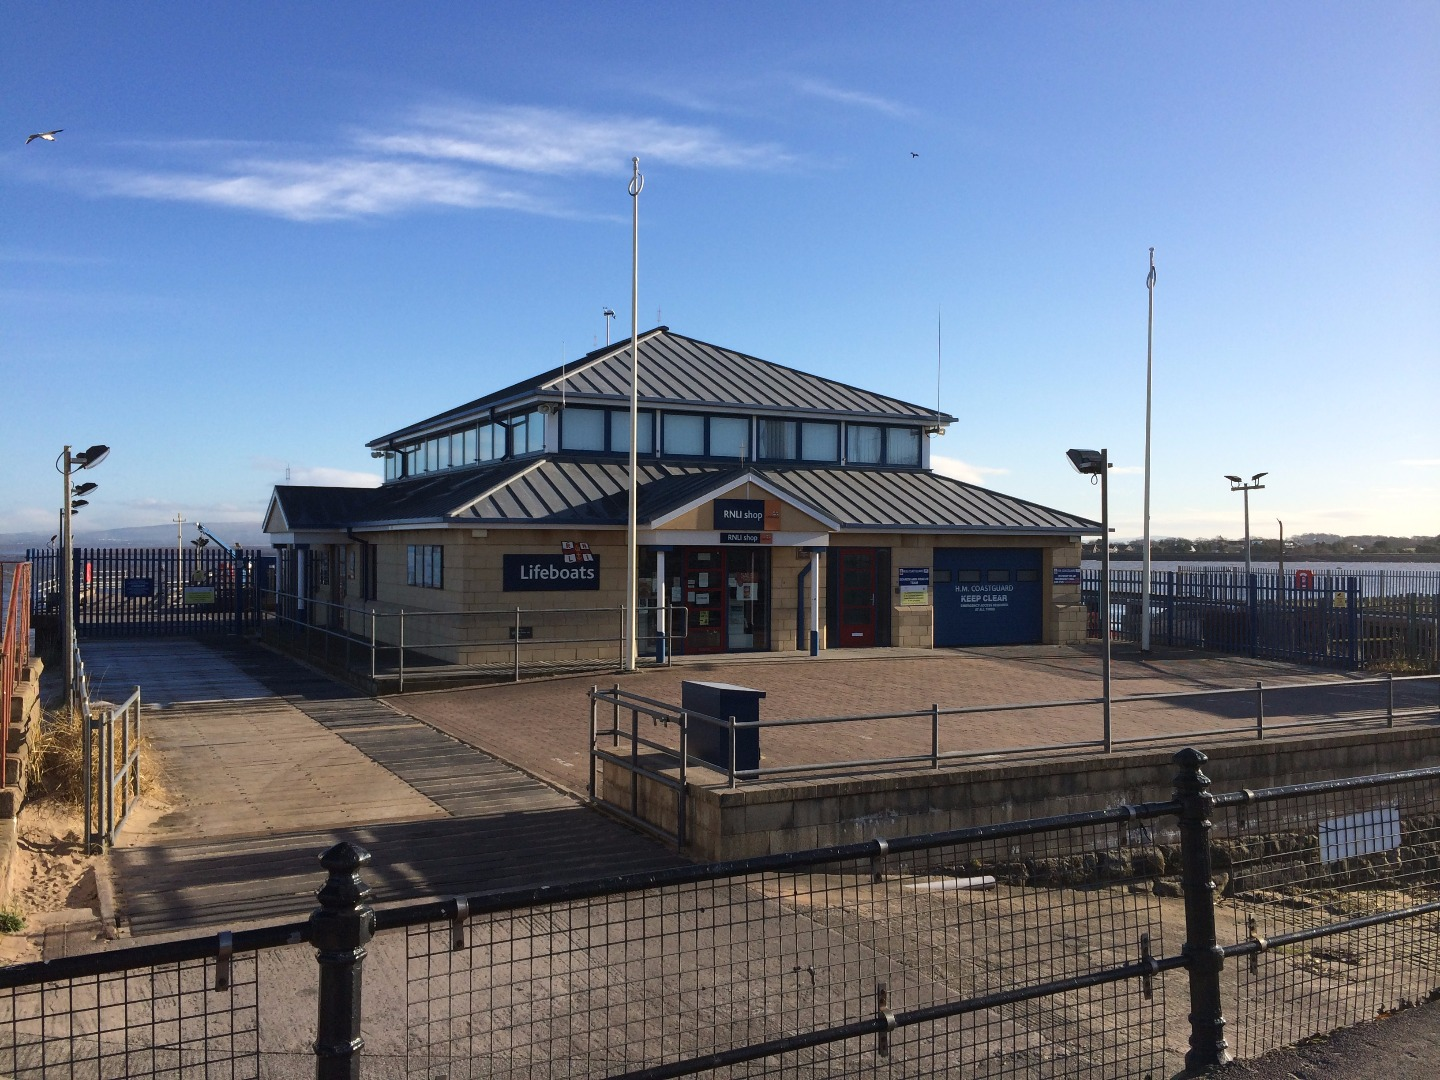 Fleetwood RNLI Lifeboat station and shop at Ferry Beach